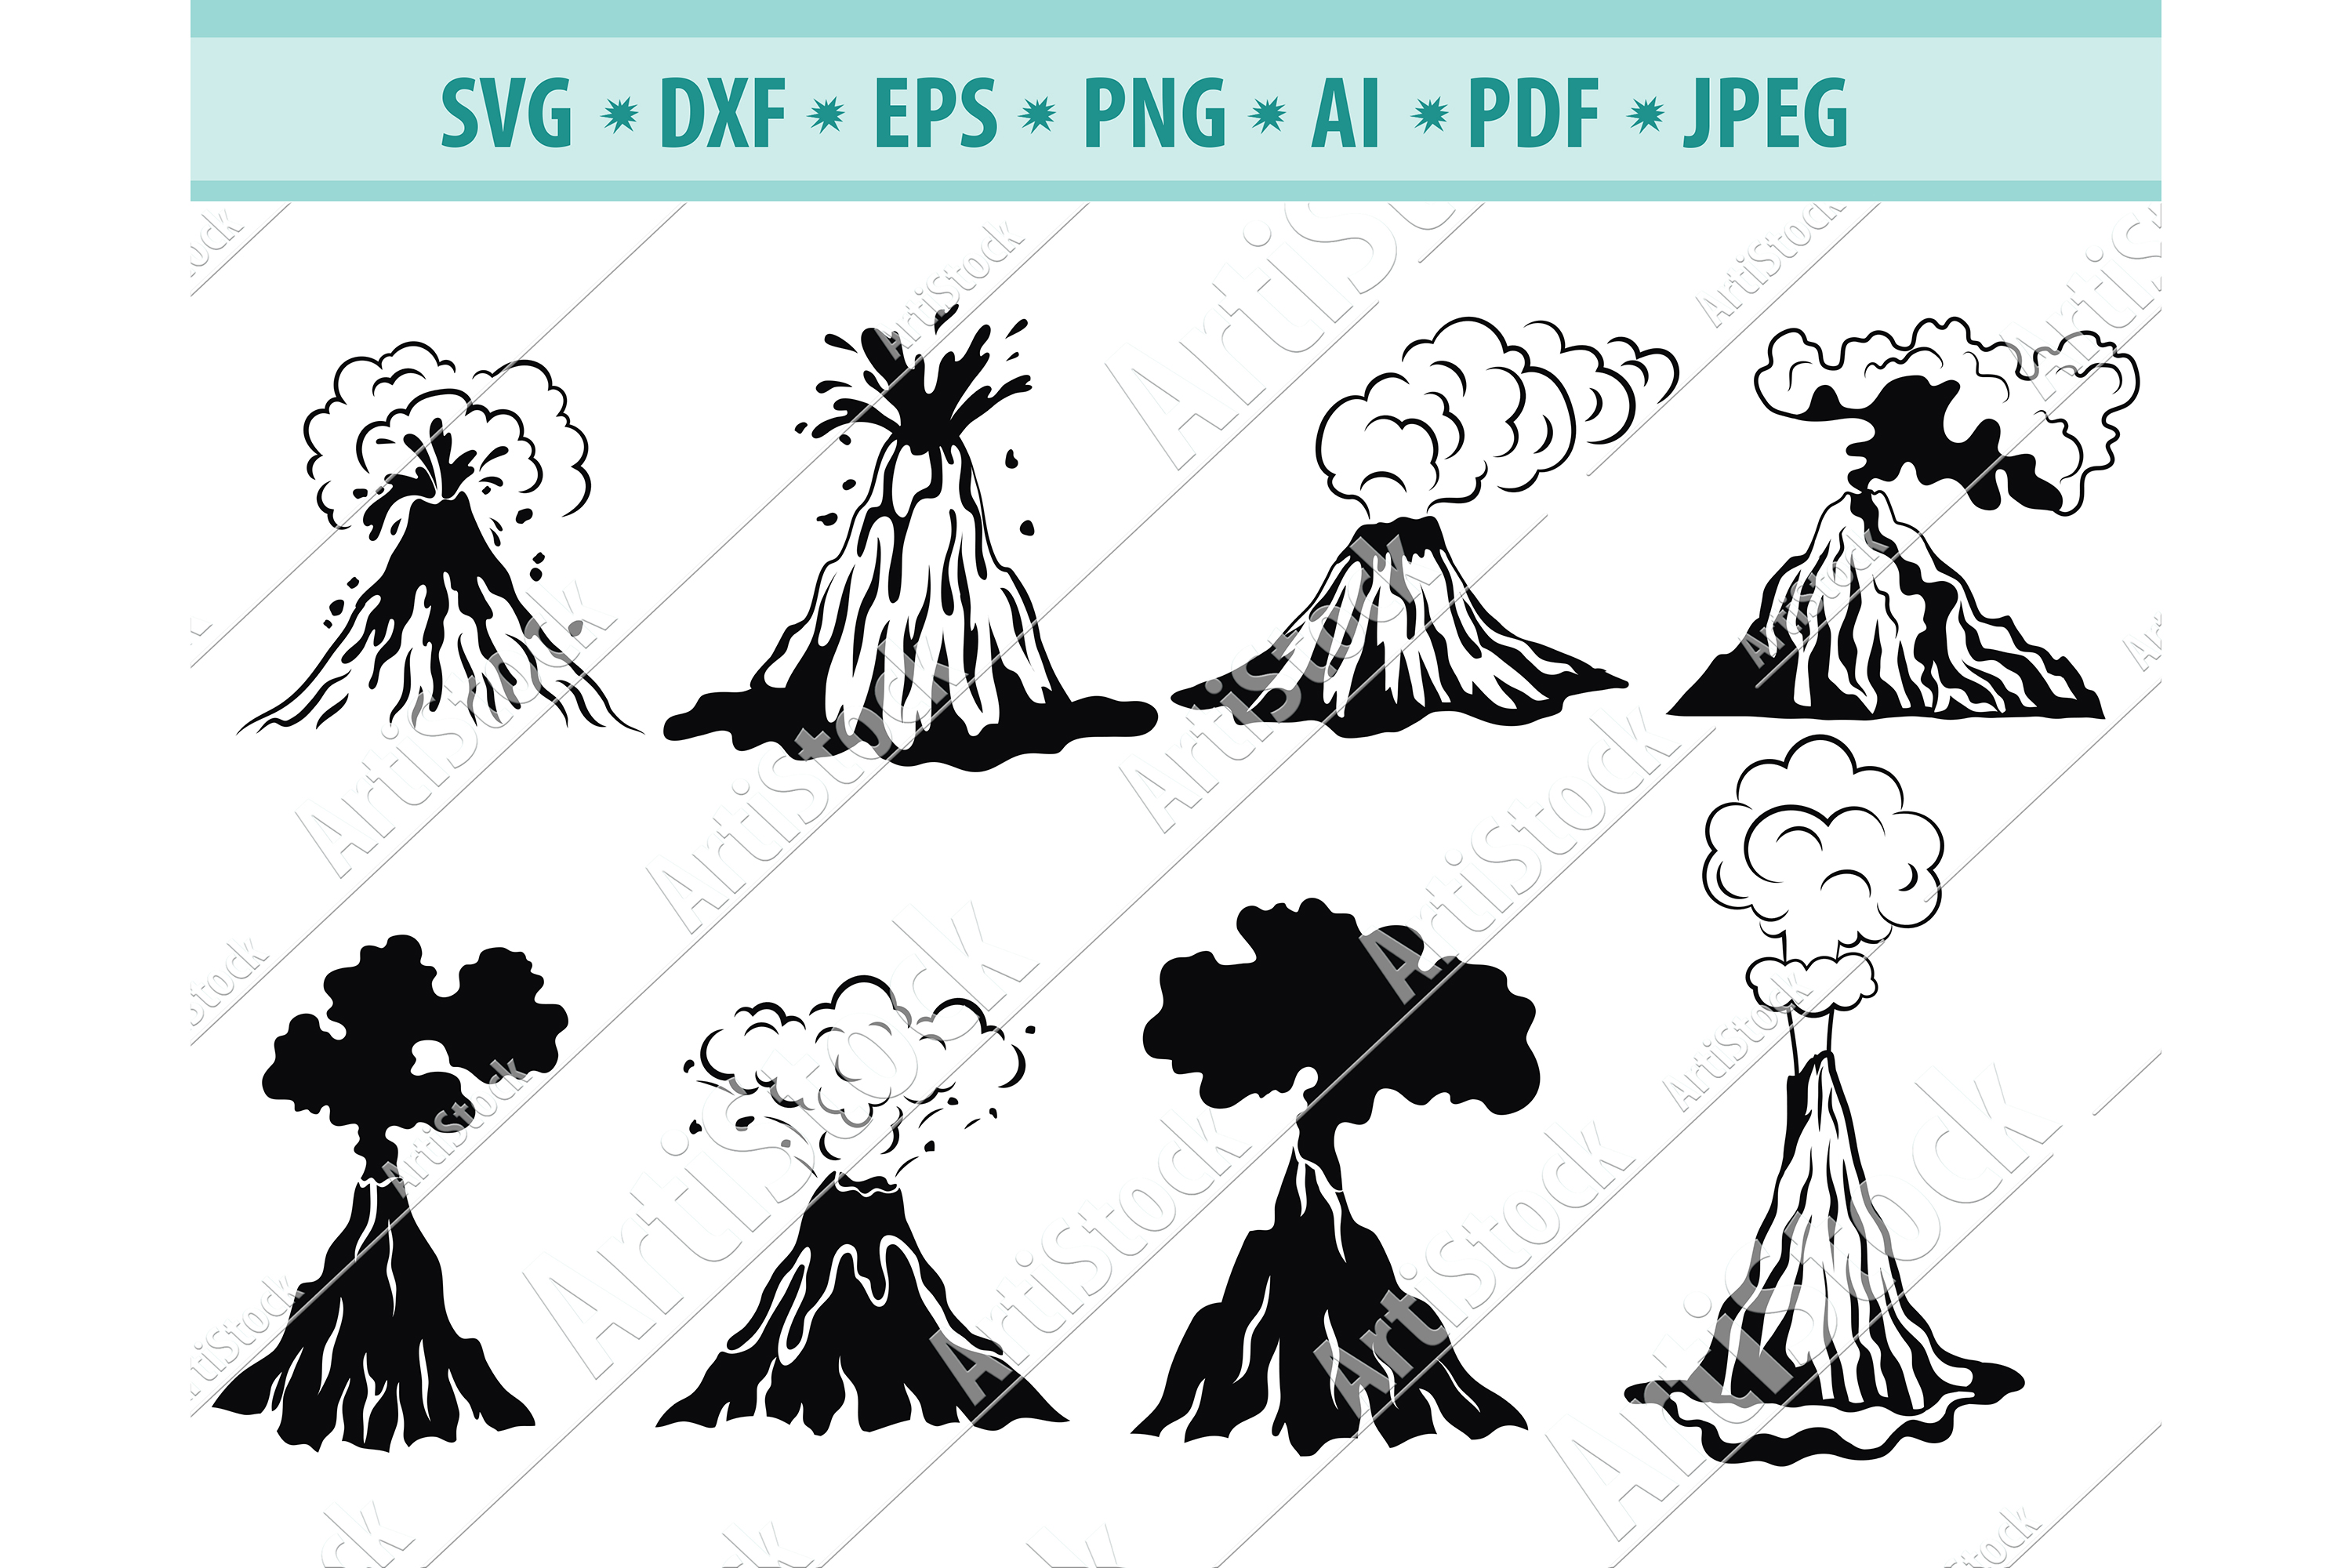 Volcano SVG, Volcano Clipart, Cataclysms Svg, Dxf, Png, Eps example image 1